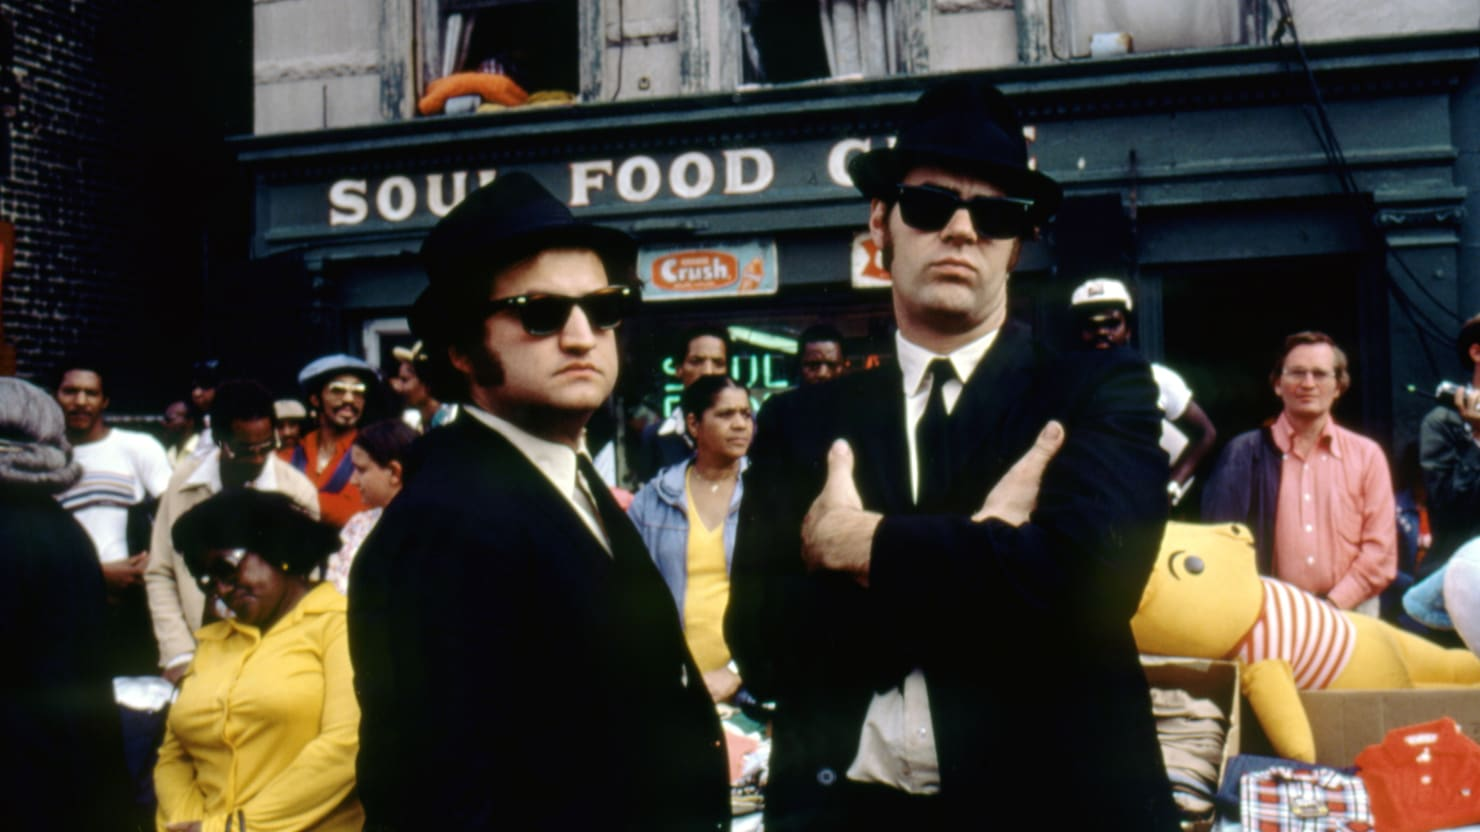 Dan Aykroyd: How Cocaine and a Love of Music Fueled 'The Blues Brothers'